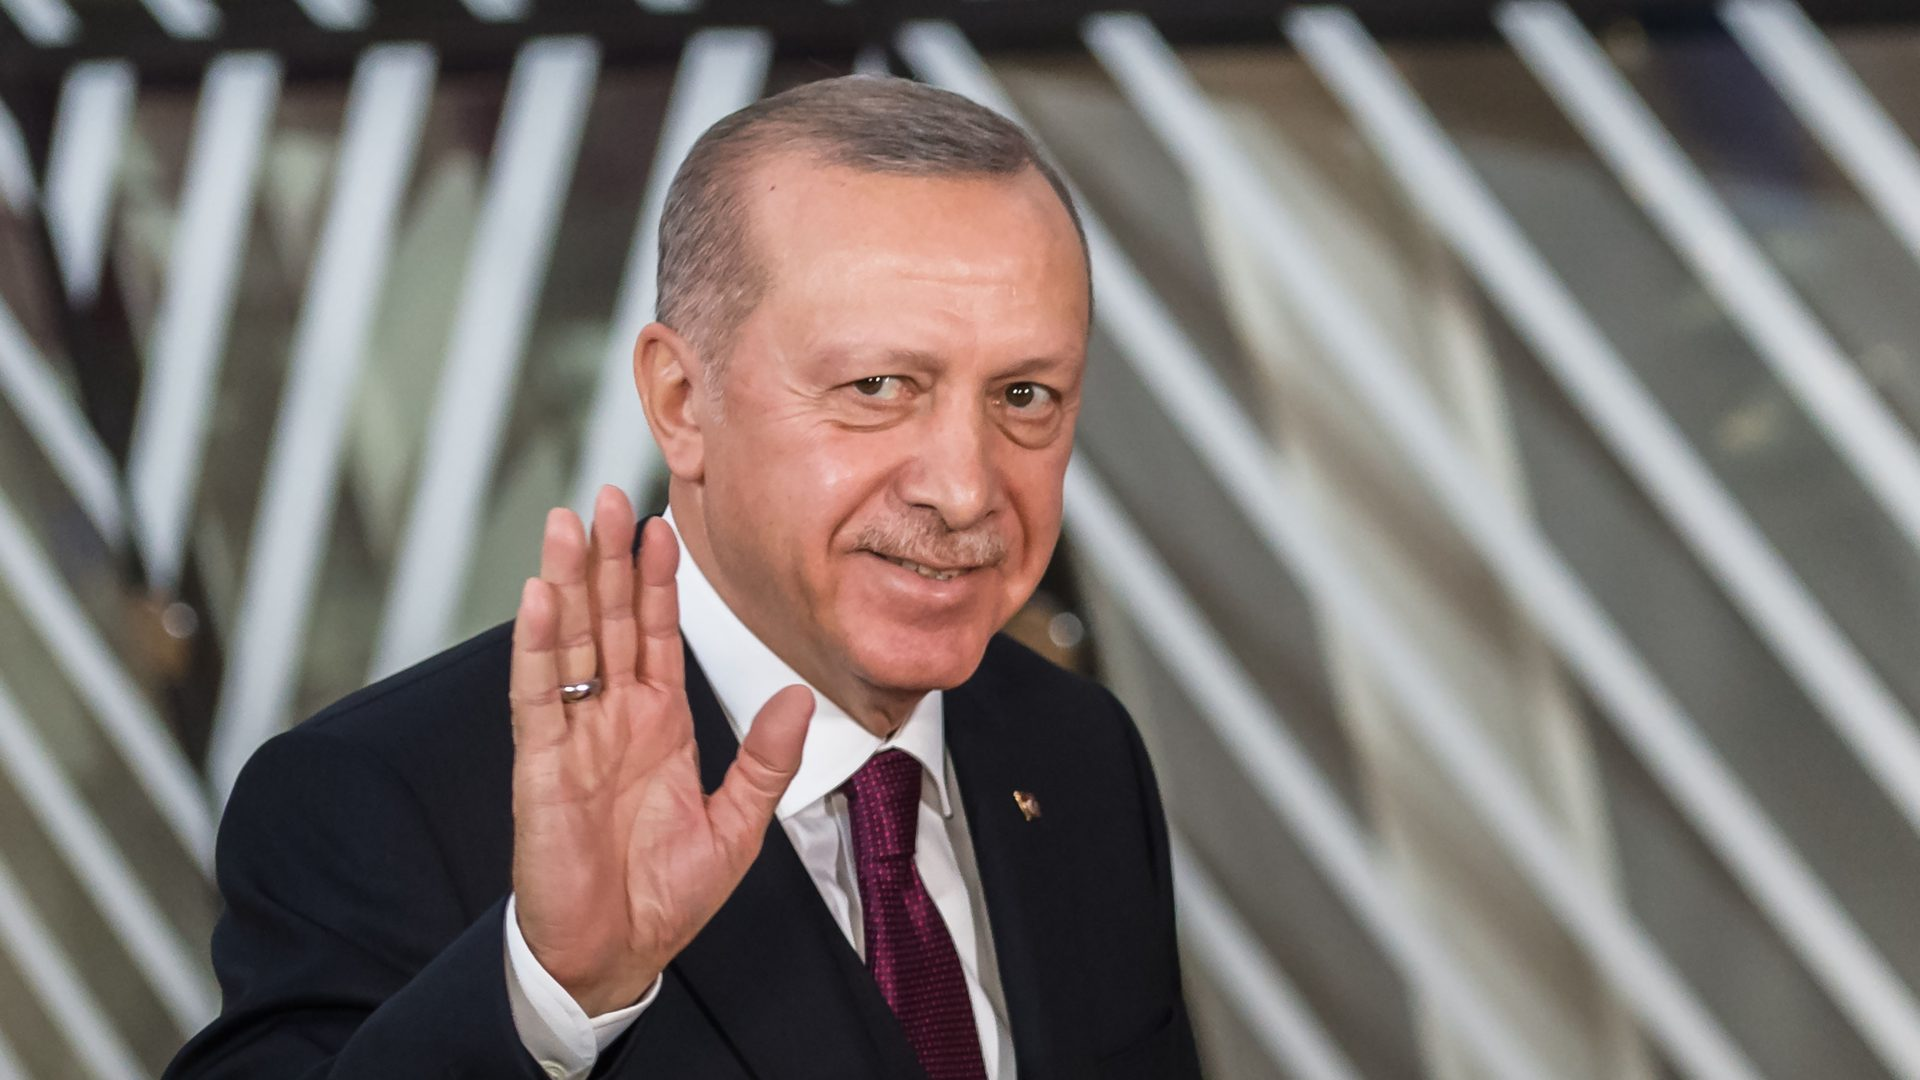 Erdogan Defies the West to Make Turkey a Regional Power 25